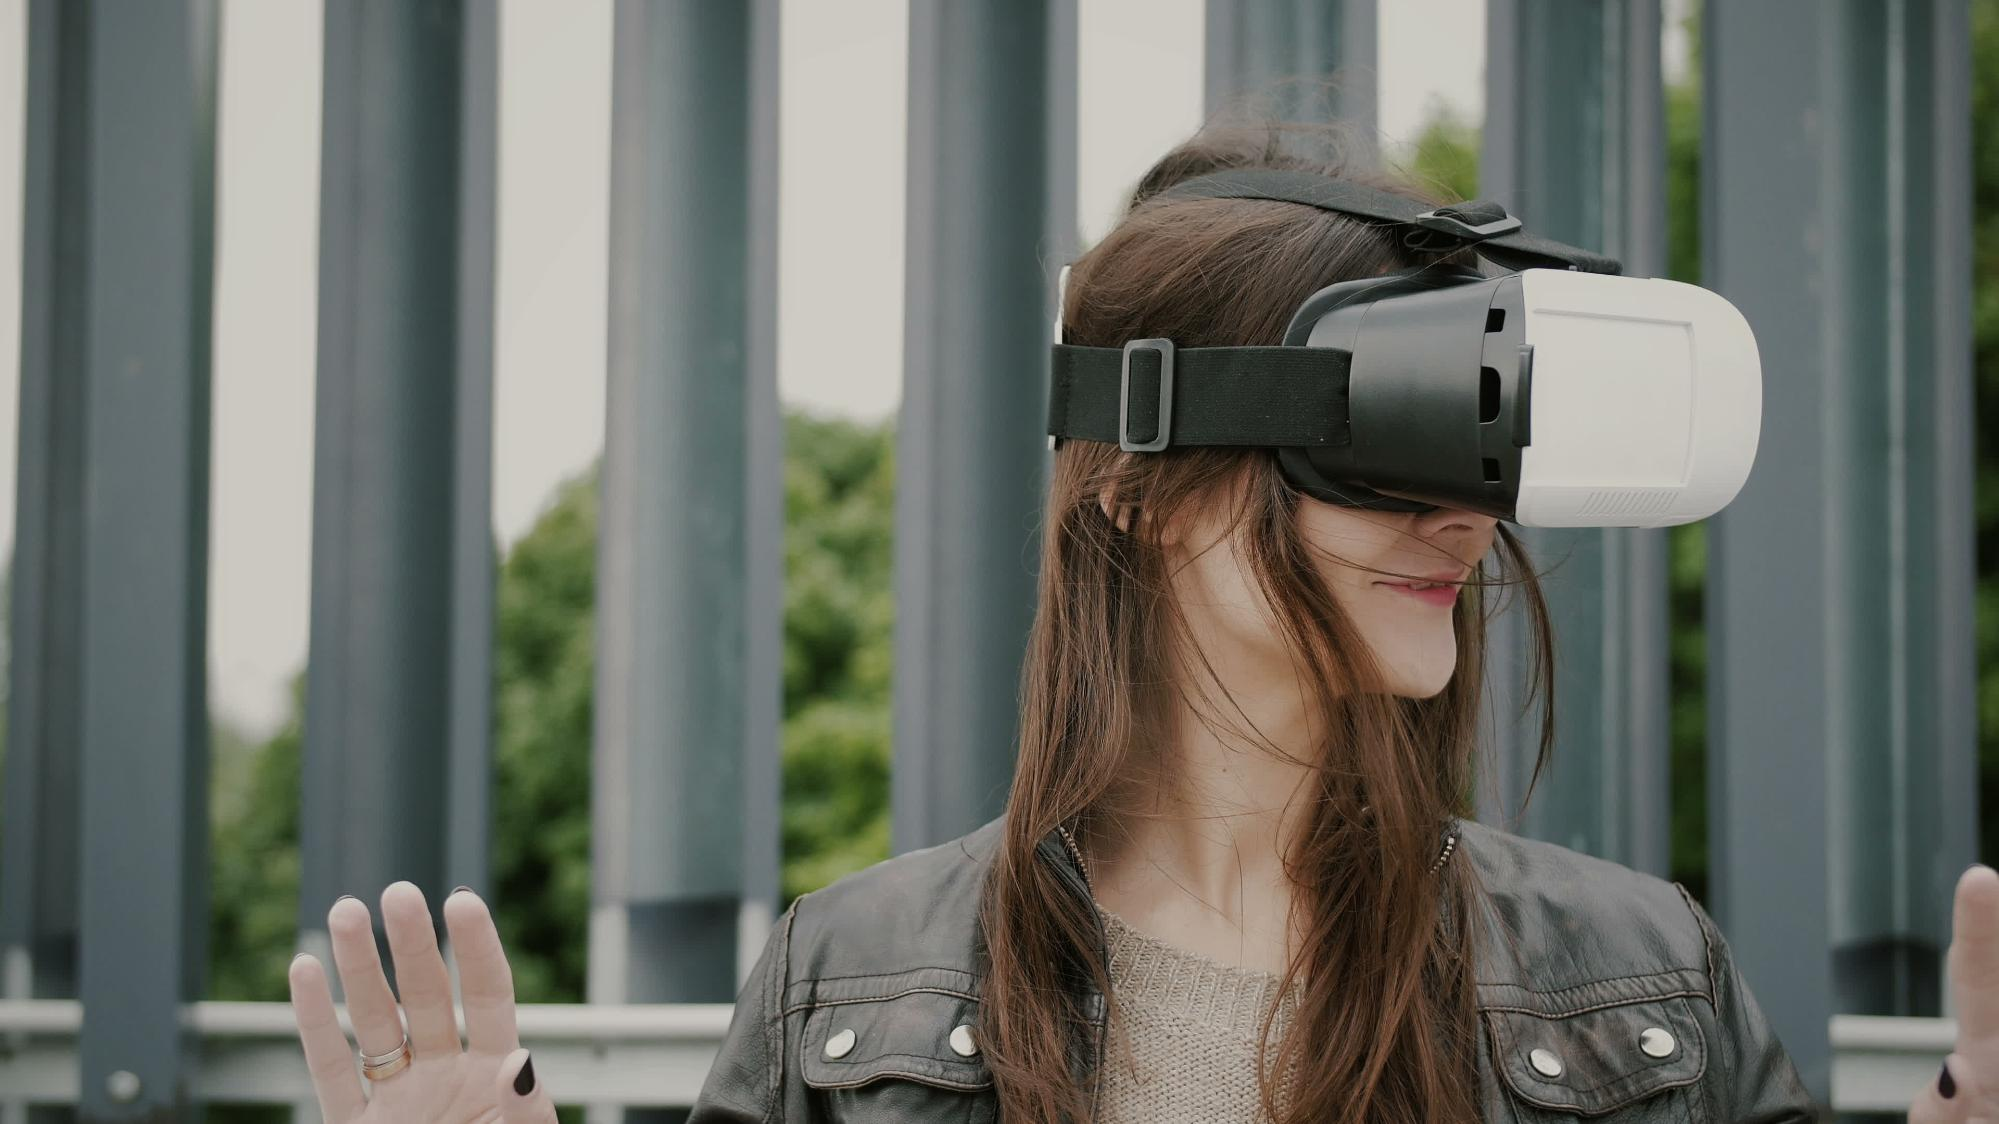 A woman wears a VR headset with a fence in the background